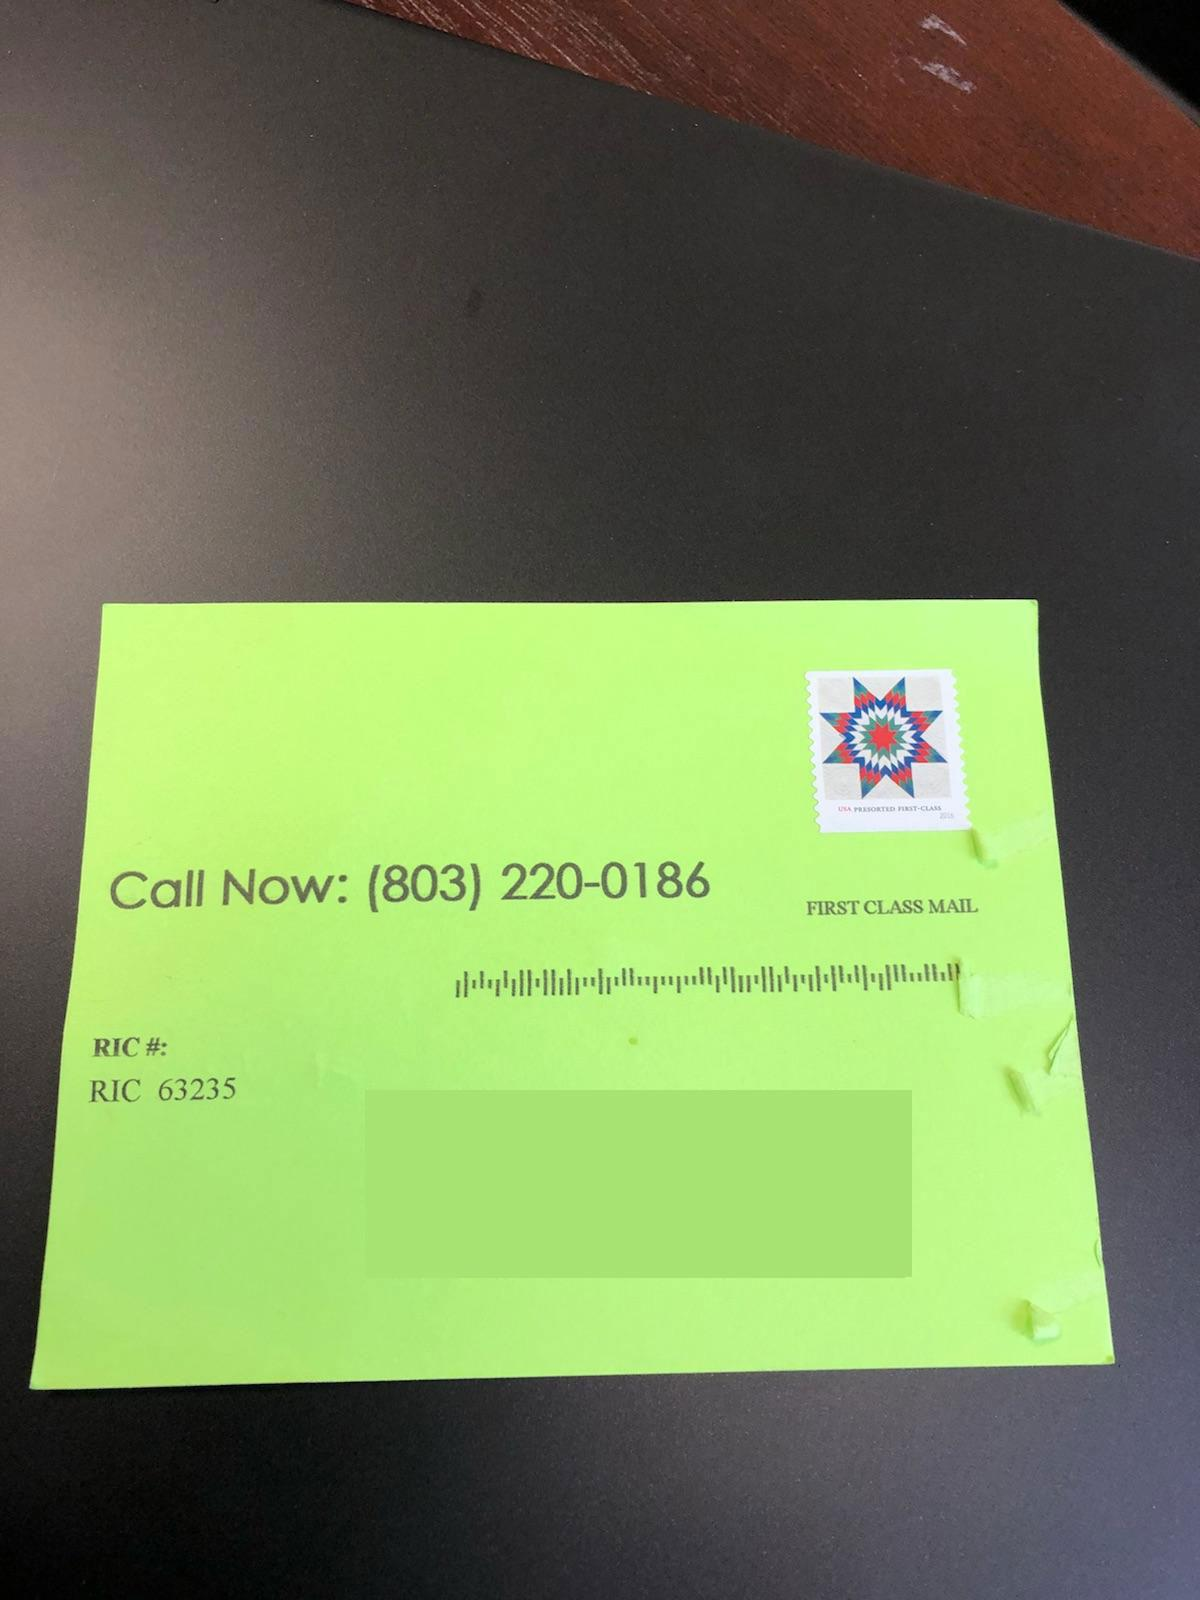 Columbia water warns residents of mailing scam